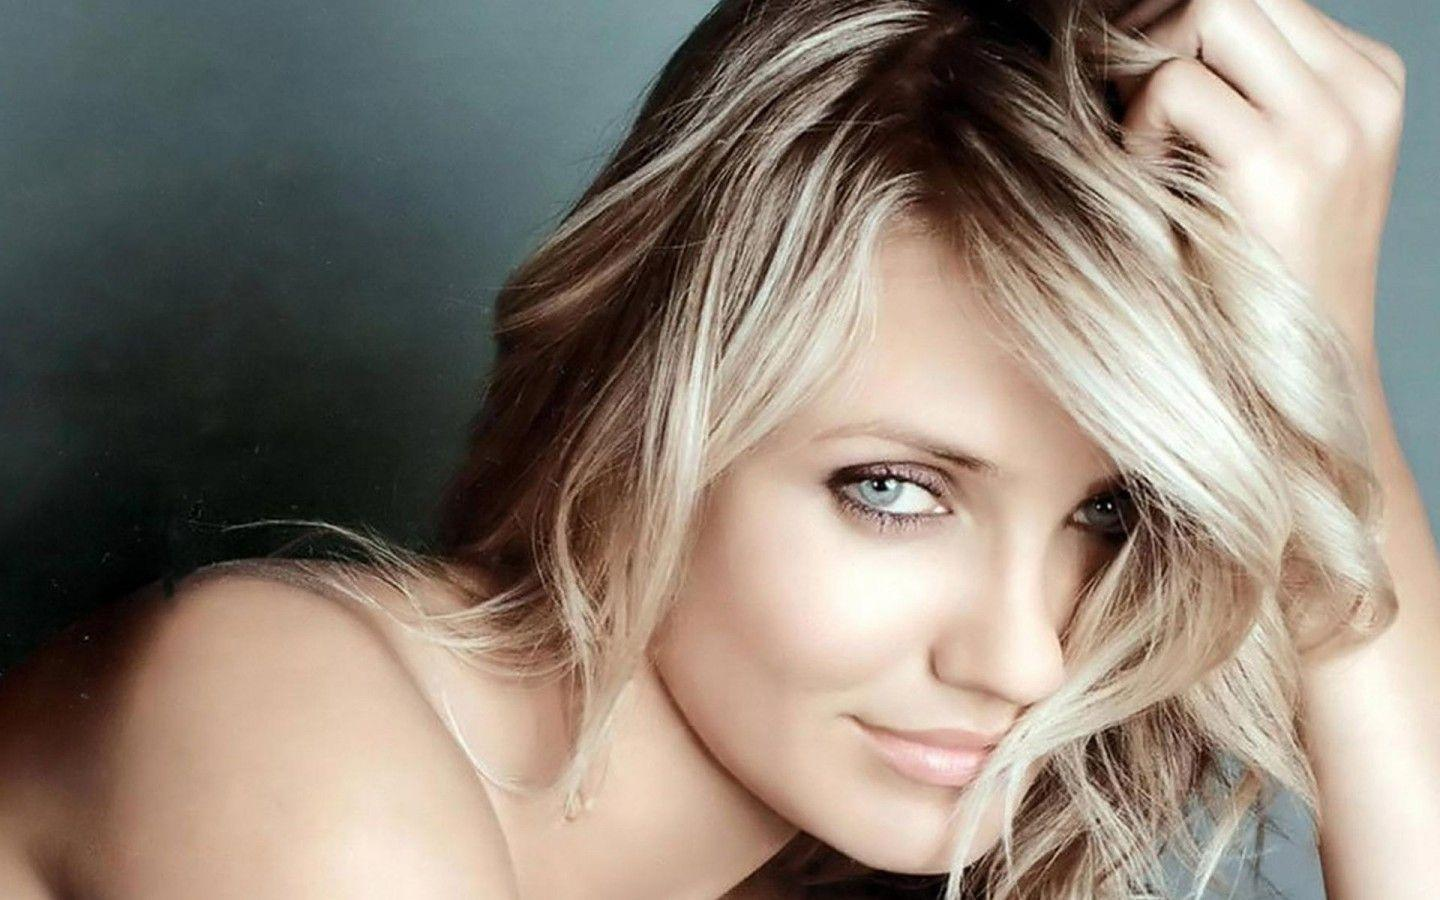 Cameron Diaz Wallpapers High Resolution, Best 26 Images of Cameron ...